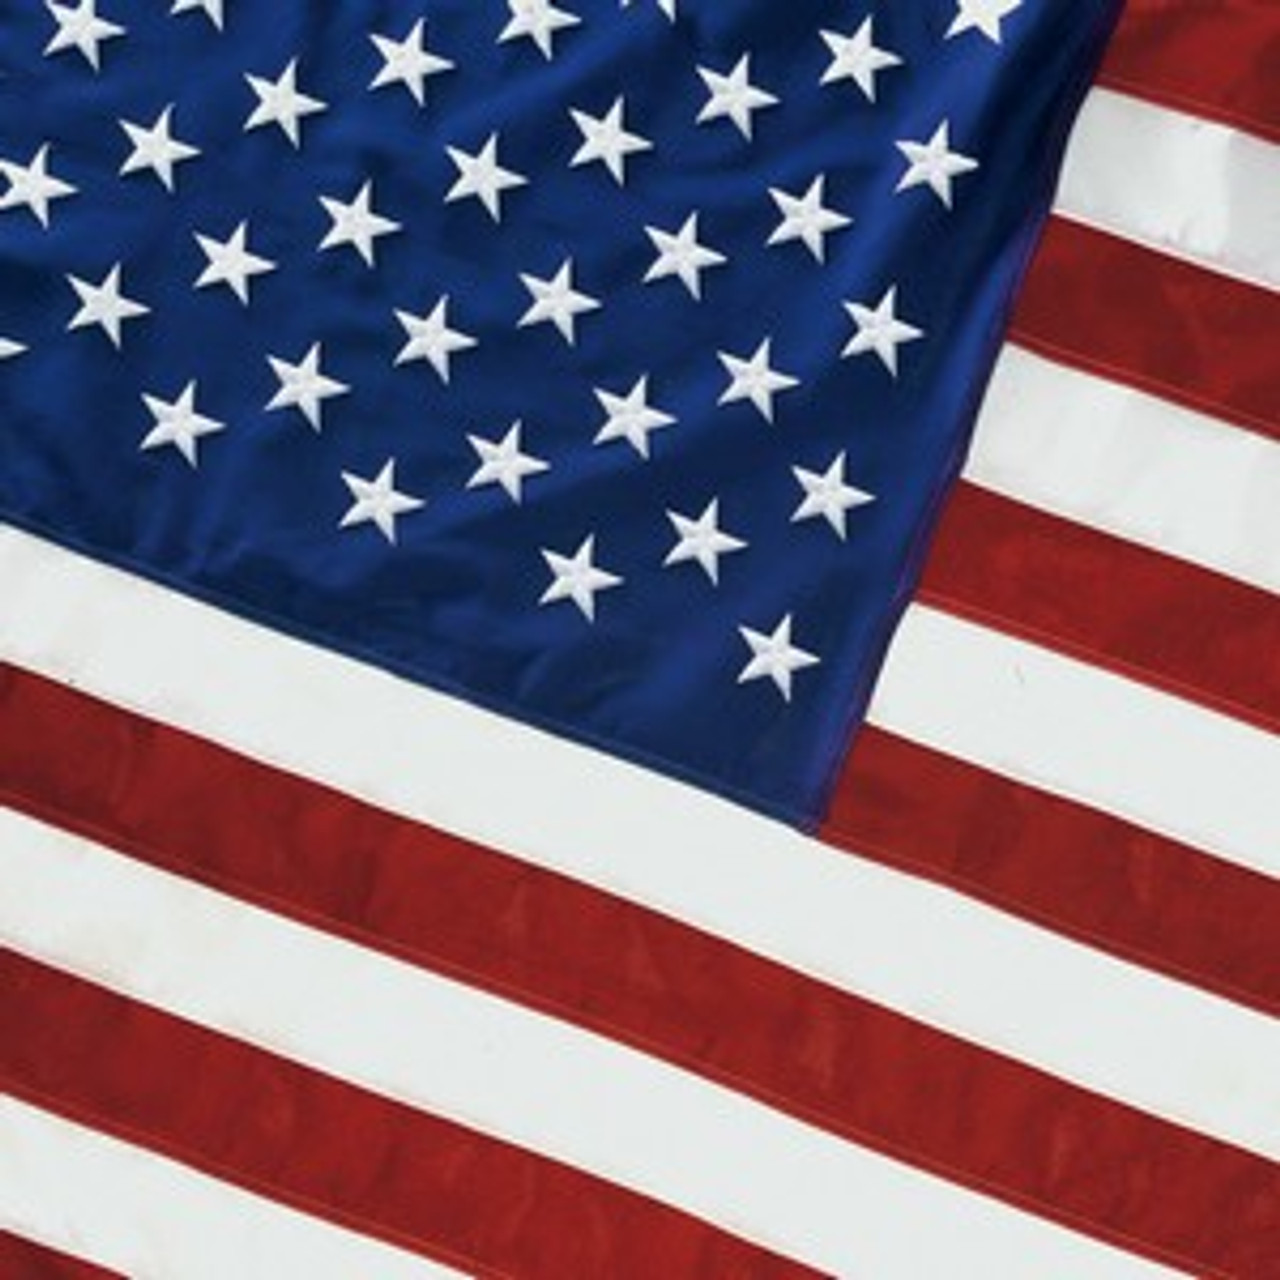 his 10'x15' 2-ply spun polyester U.S. flag comes with extra heavy, white polyester canvas heading with nylon rope and galvanized thimbles for added strength. To ensure stability and durability, a brass grommet is used in addition to the rope on the heading. This flag has sewn stripes and embroidered stars. Moderate to Difficult Weather Environment. Flag is 100% made in the U.S.A.